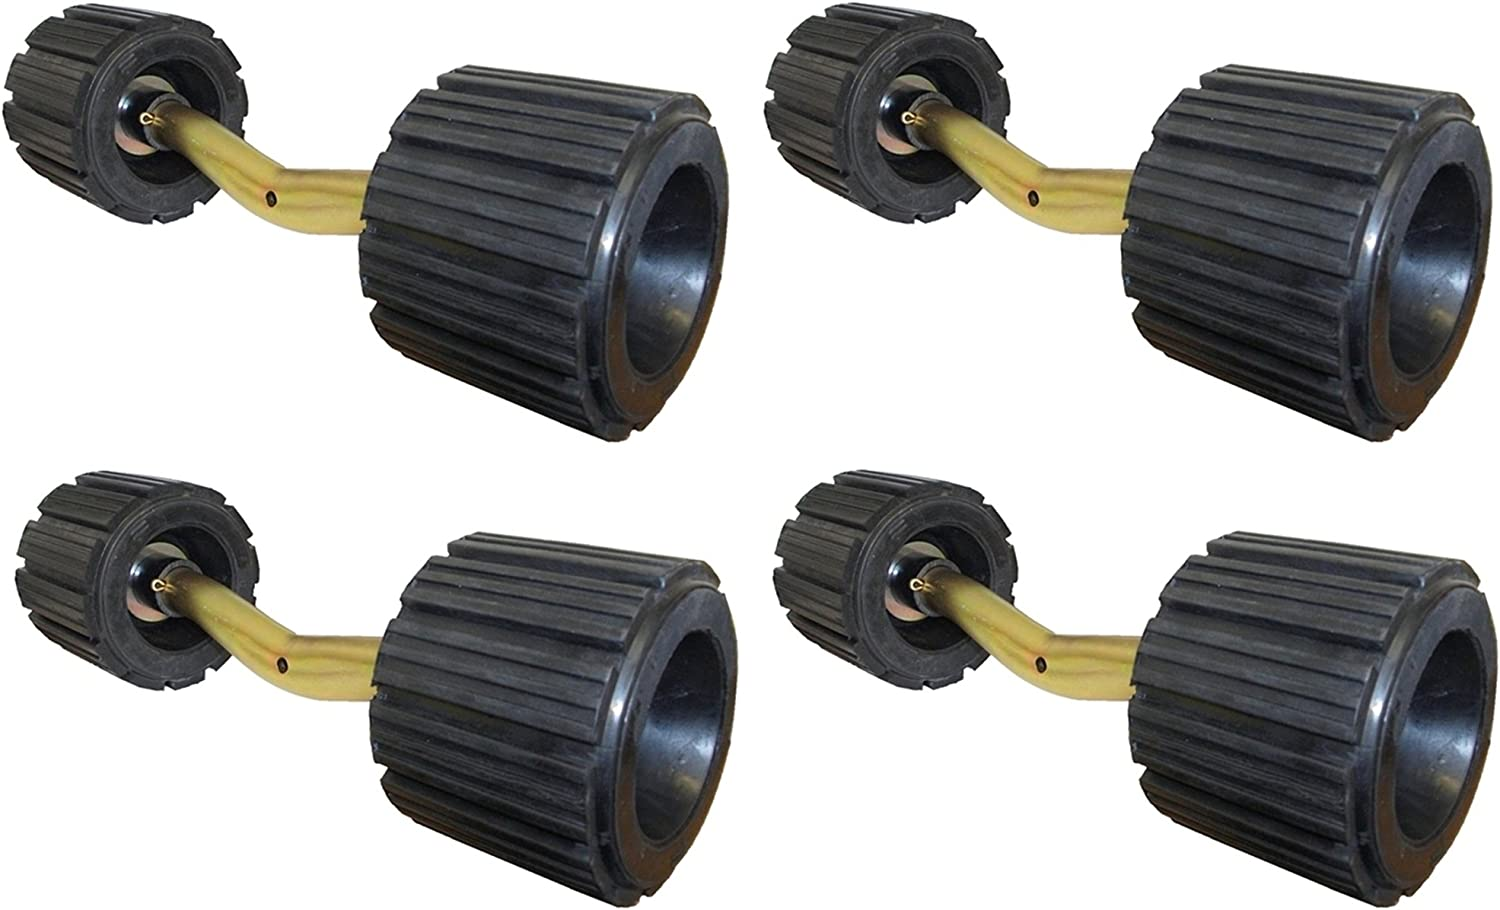 leisure MART 4 x Ribbed boat trailer roller bent brackets with ribbed rollers Pt no LMX1499